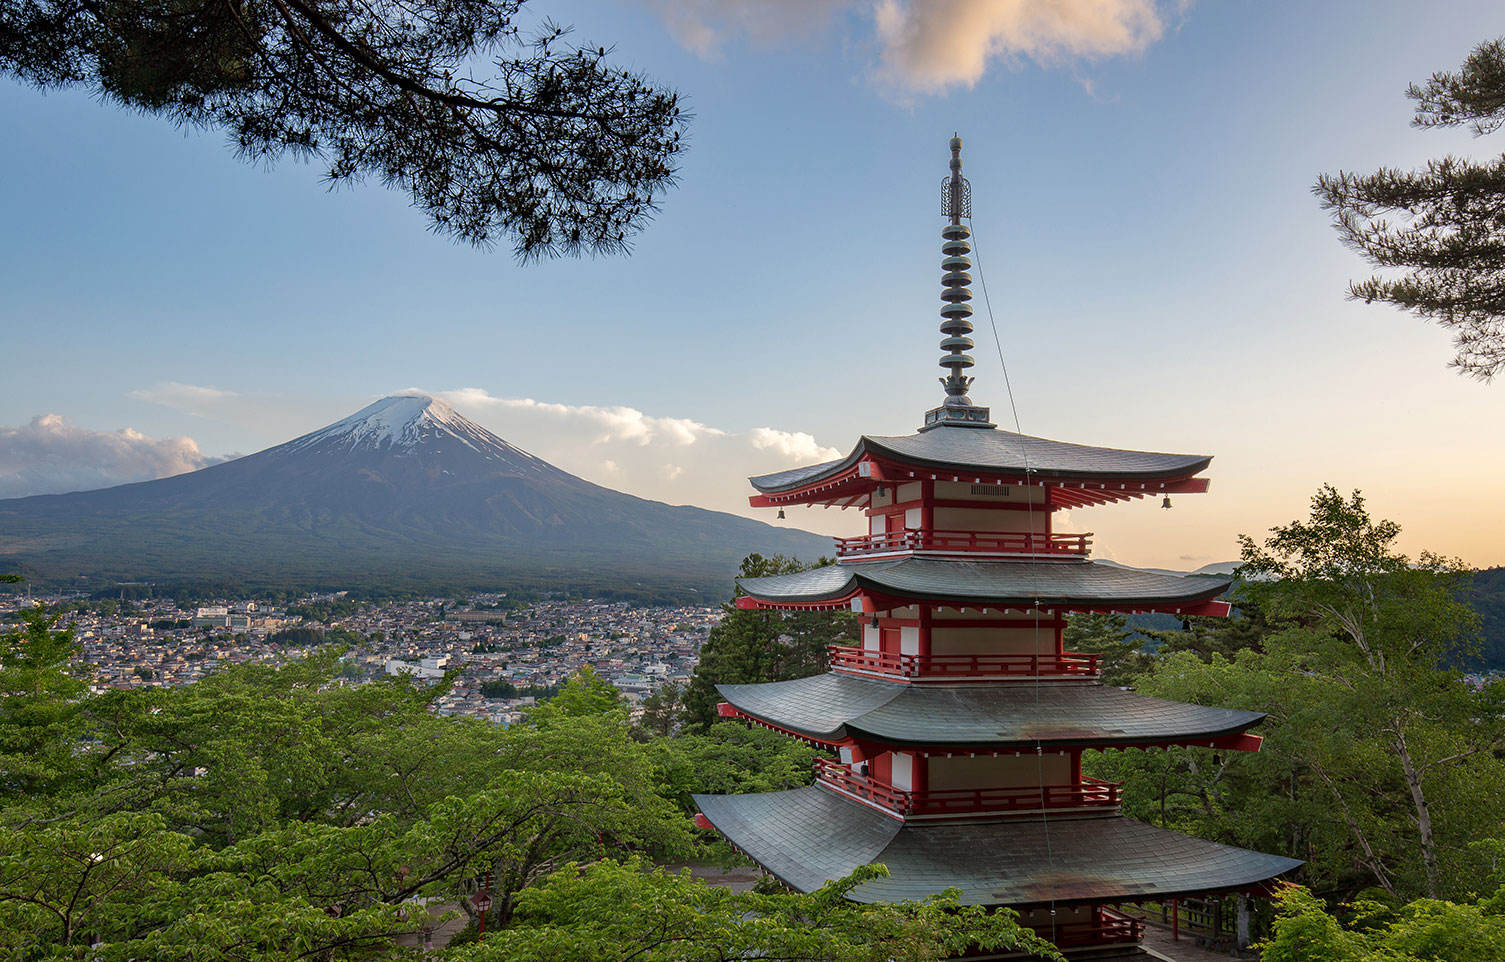 view of mount fuji from the chureito pagoda